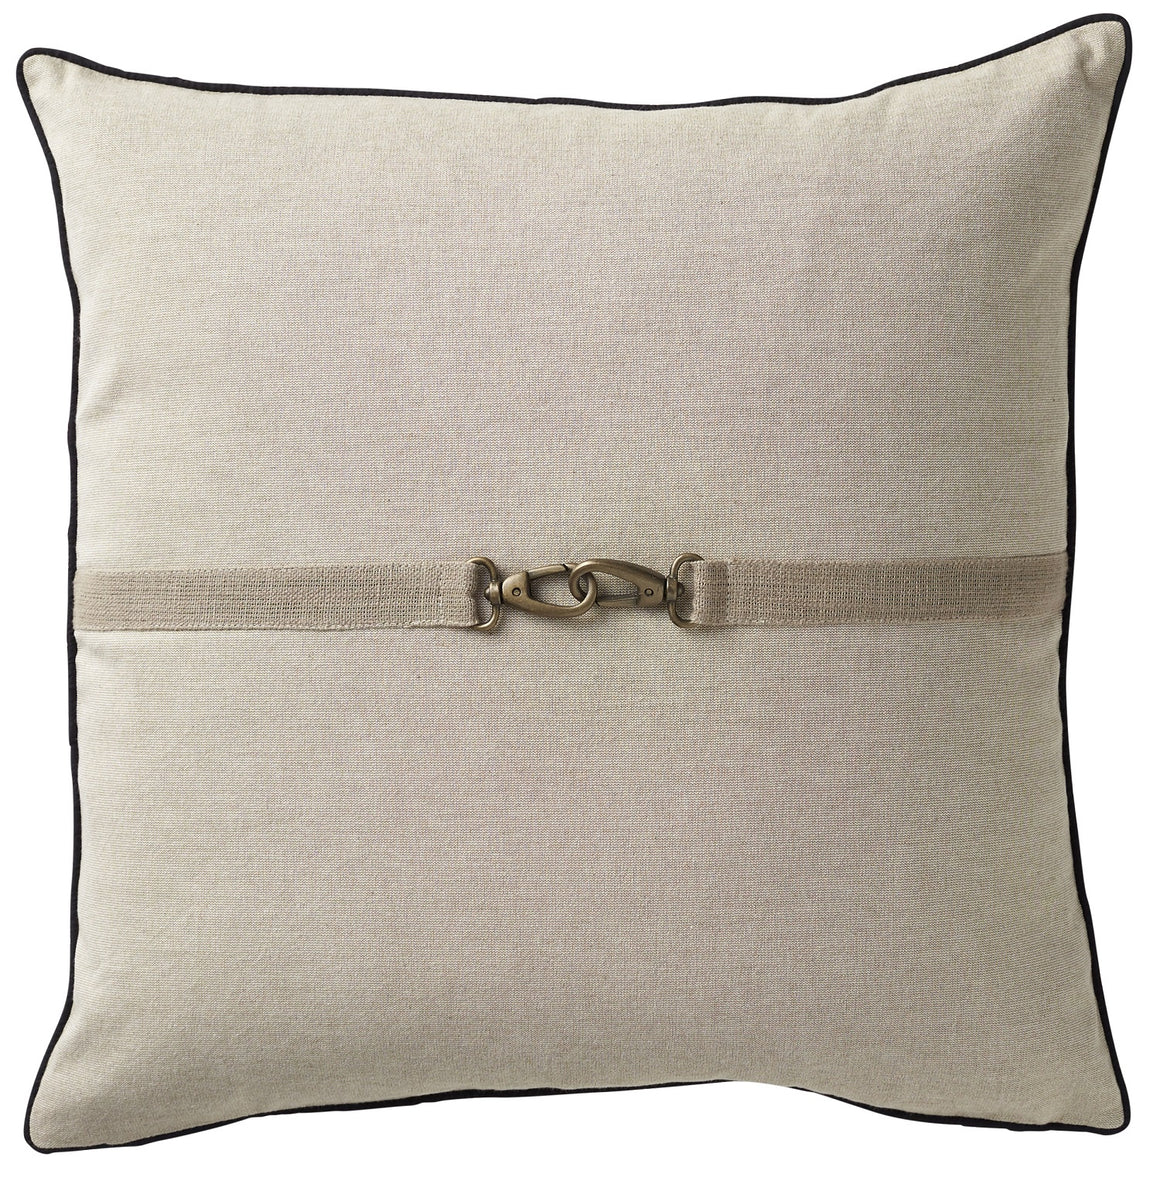 Equestrian Belt Sand Cushion